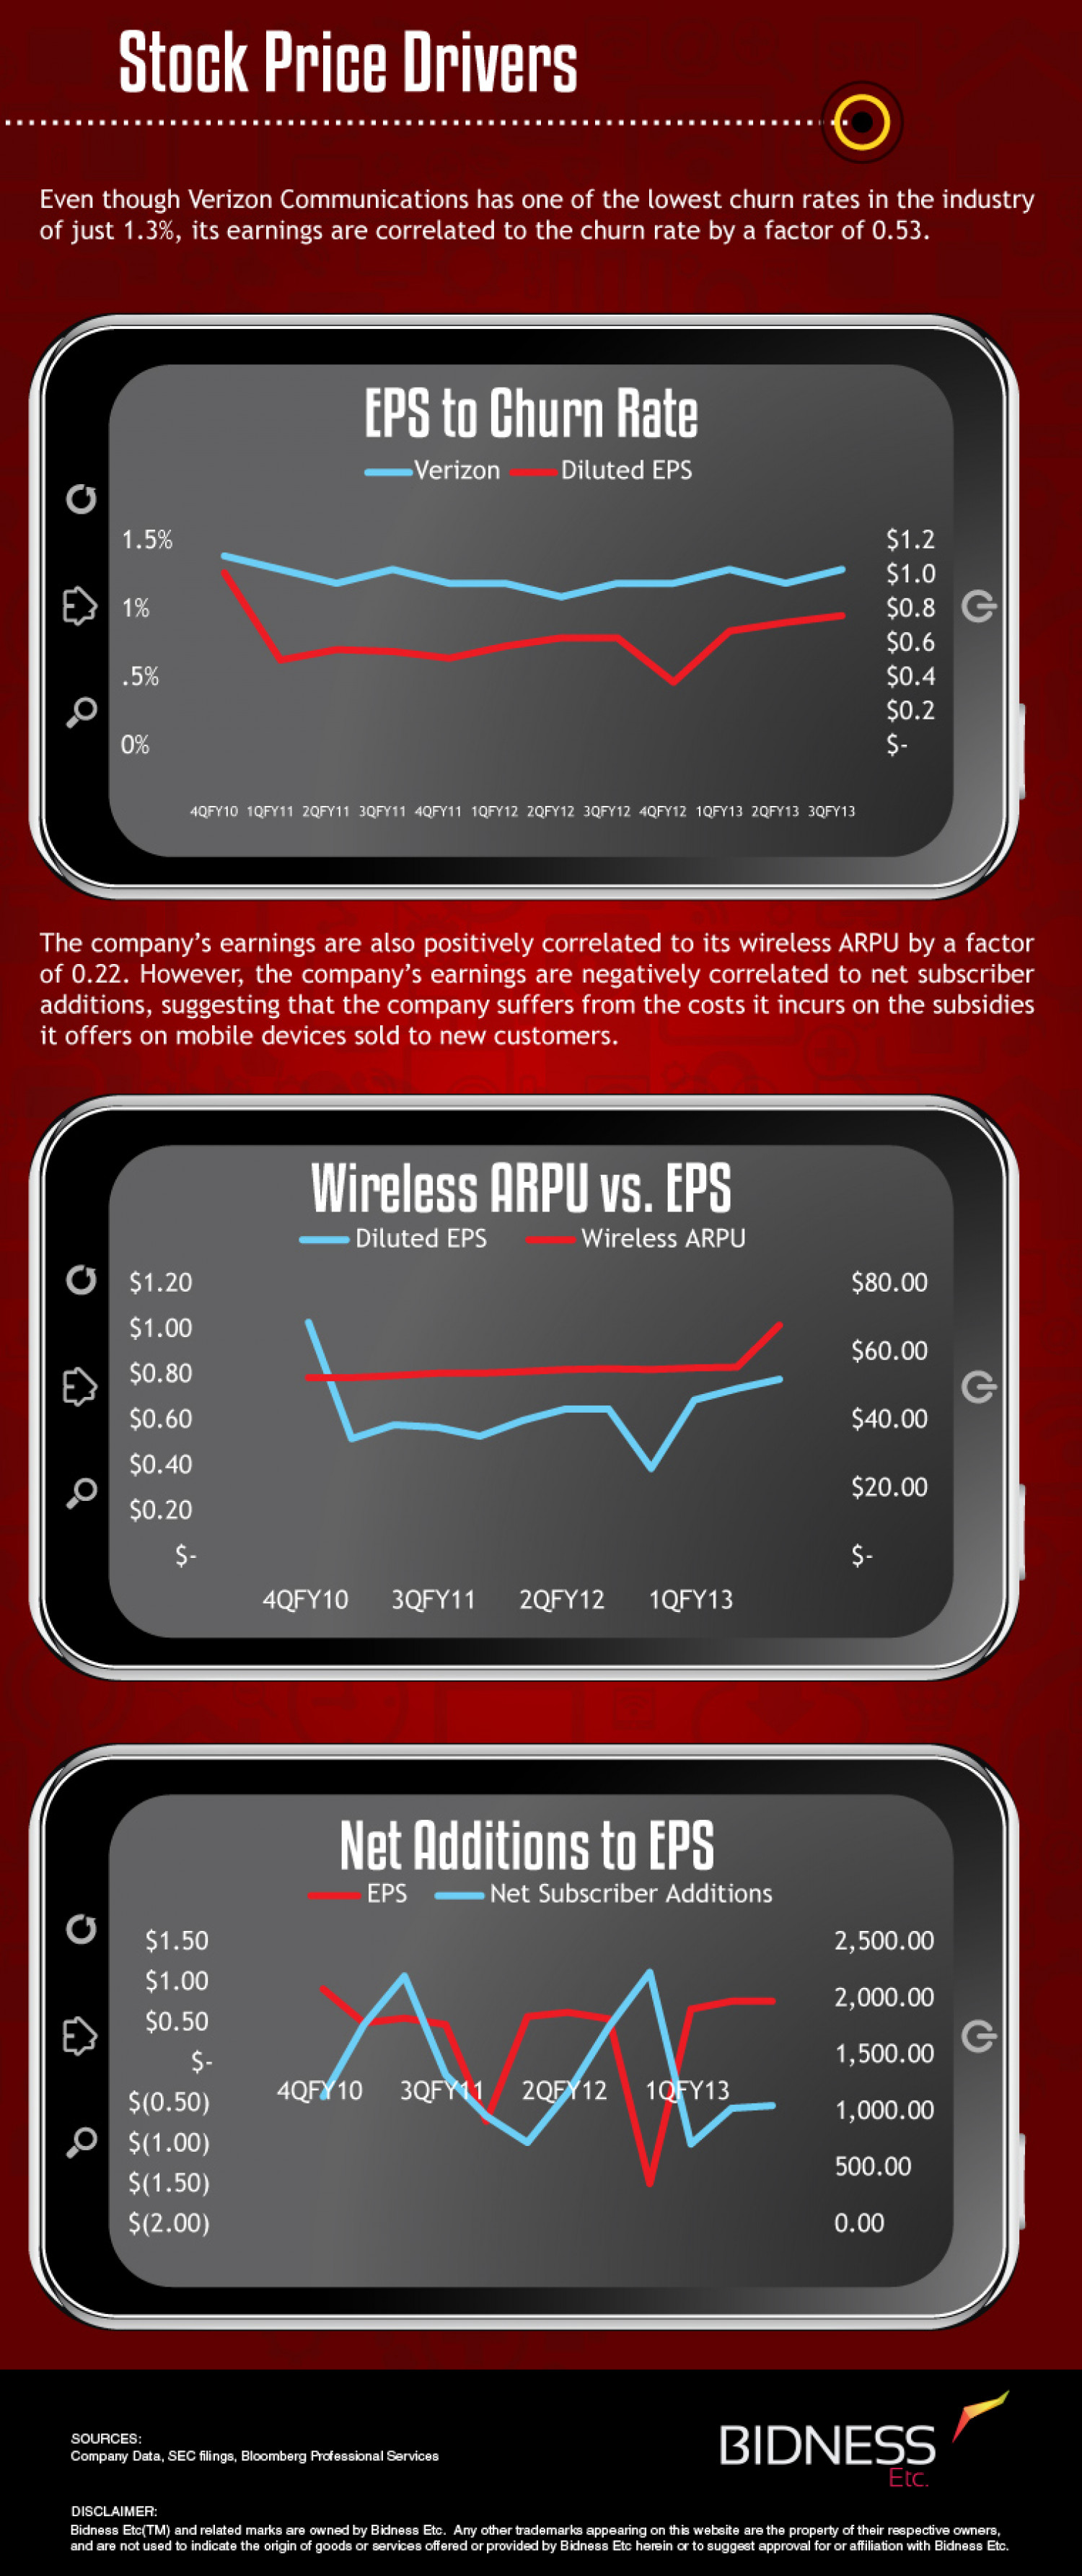 Verizon (VZ) Stock Price Drivers Infographic